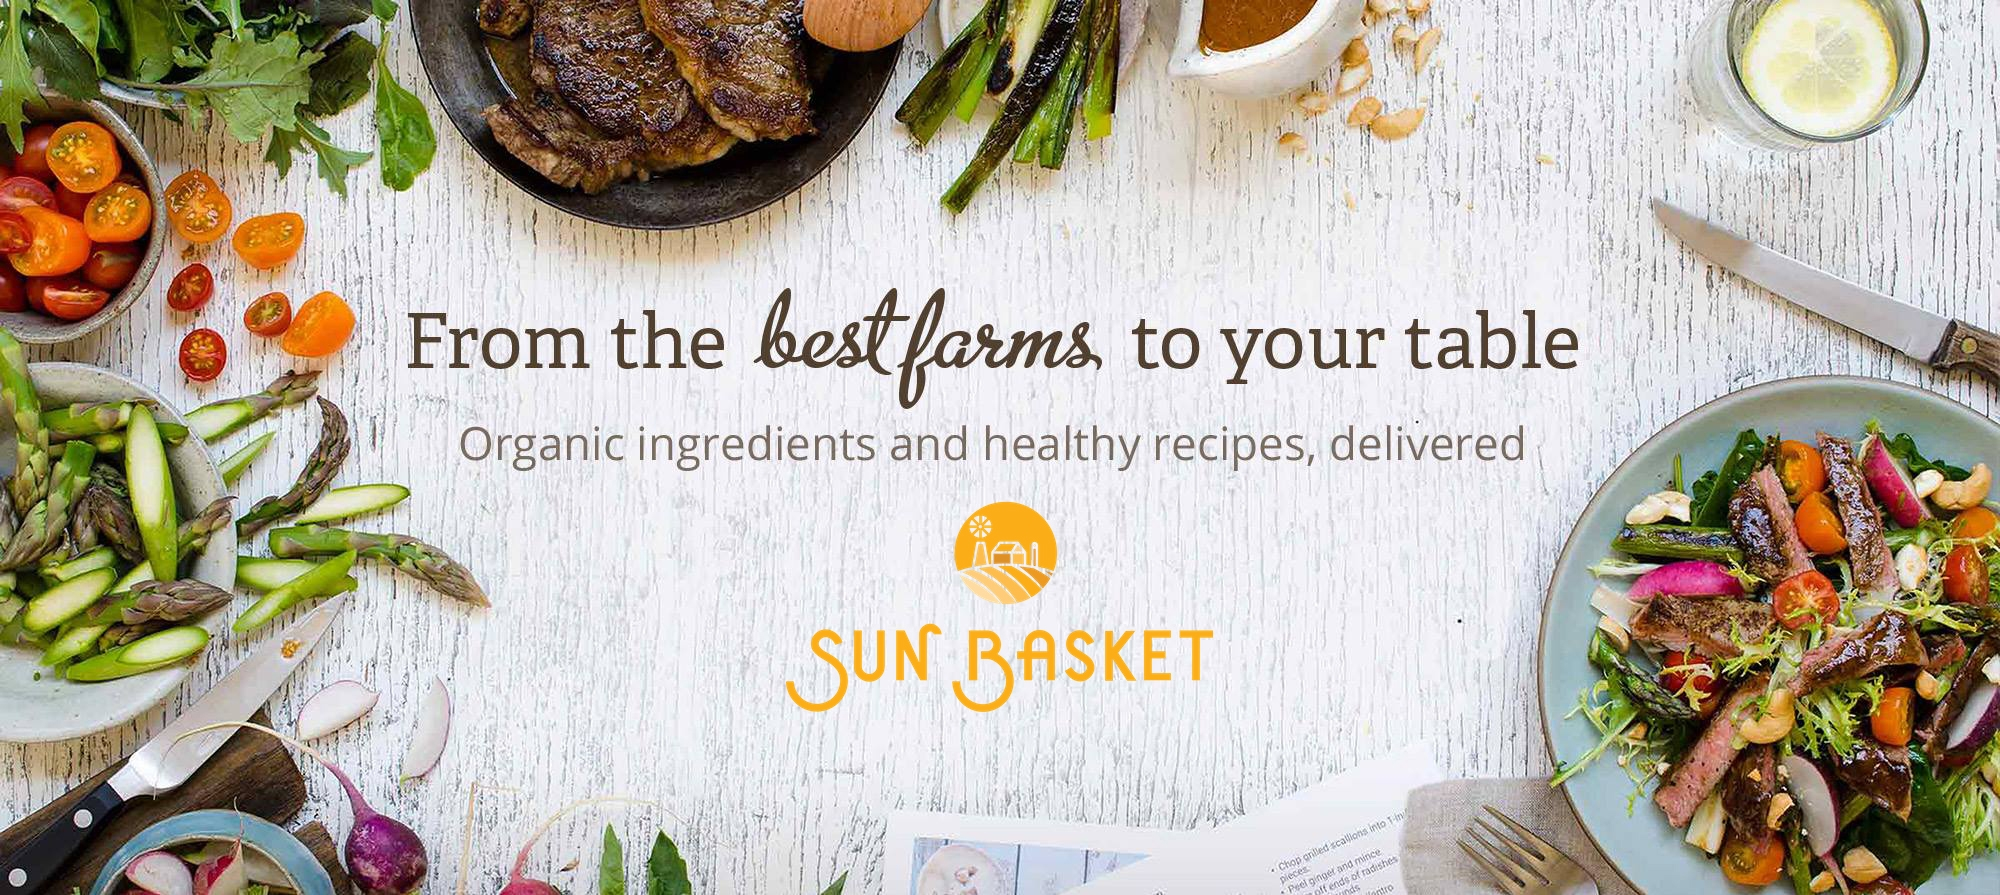 Sun basket meal delivery review and giveaway wholify forumfinder Choice Image